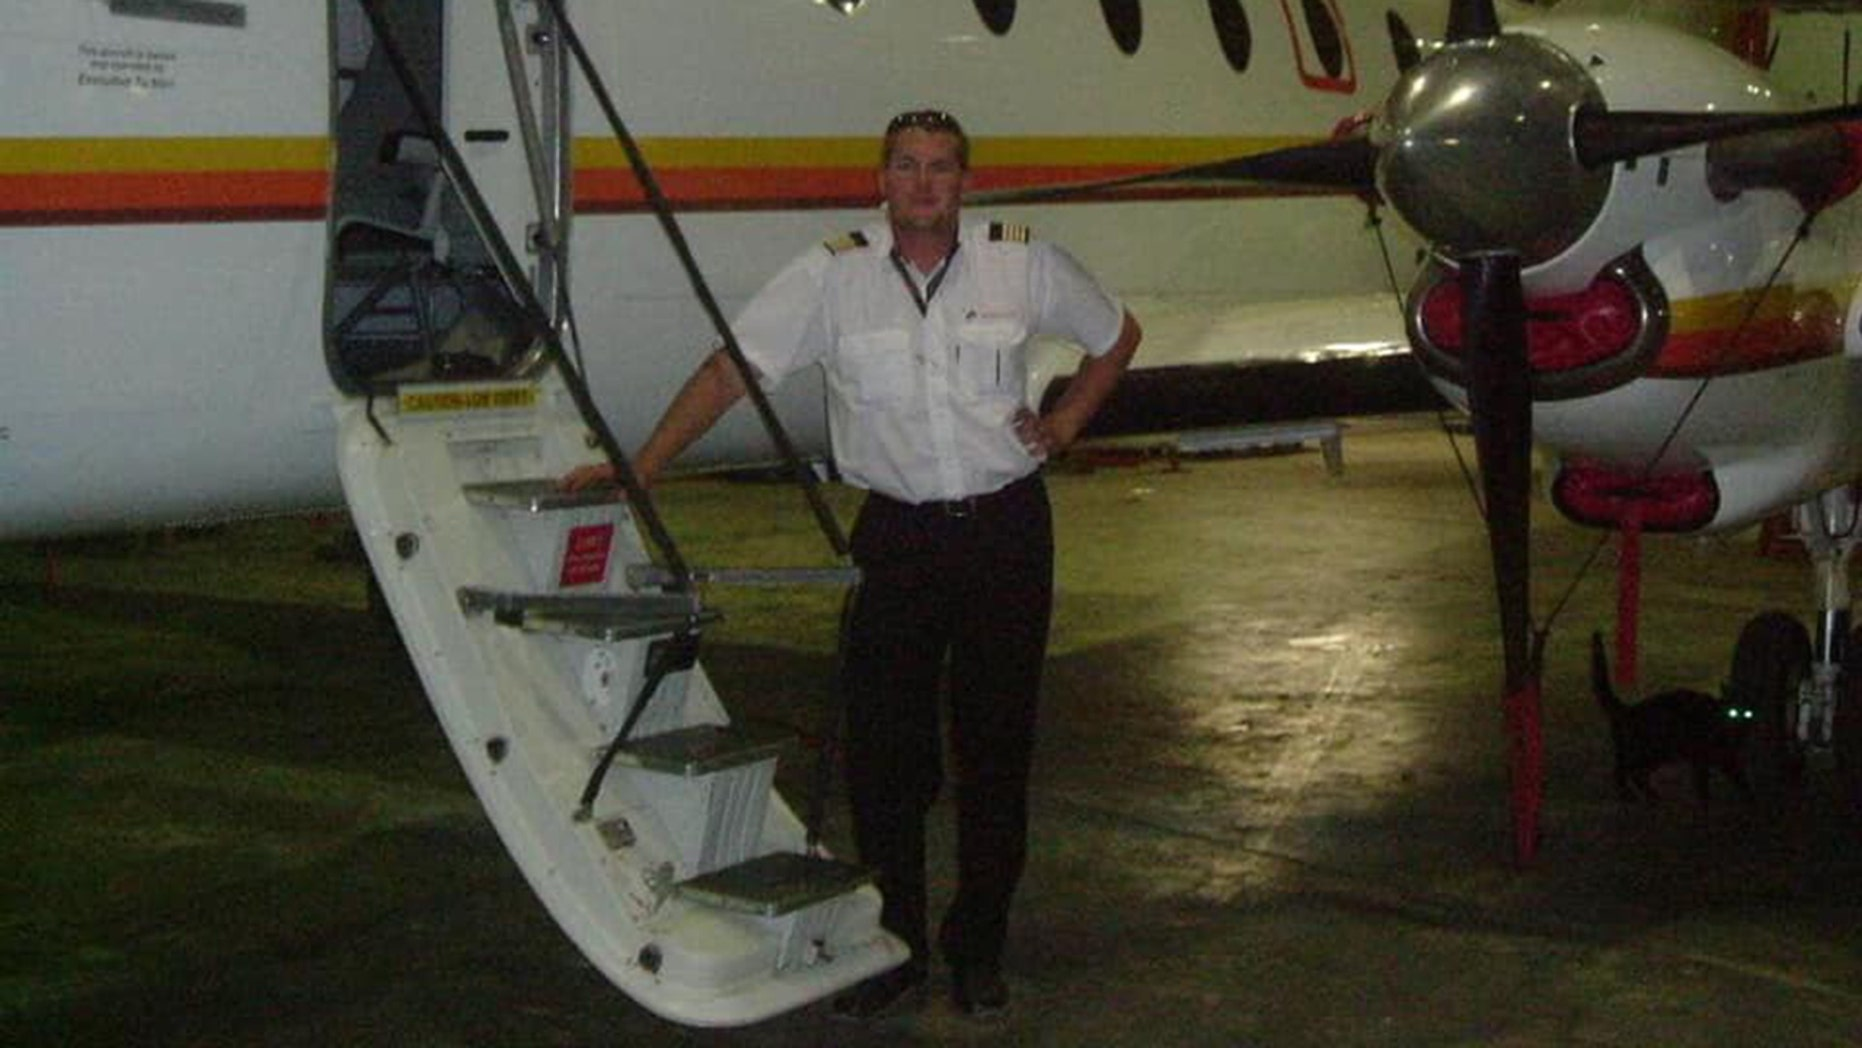 Pilot Charl Viljoen died after deliberatelycrashing a plane into a building hosting a private event on Saturday, according to local reports.